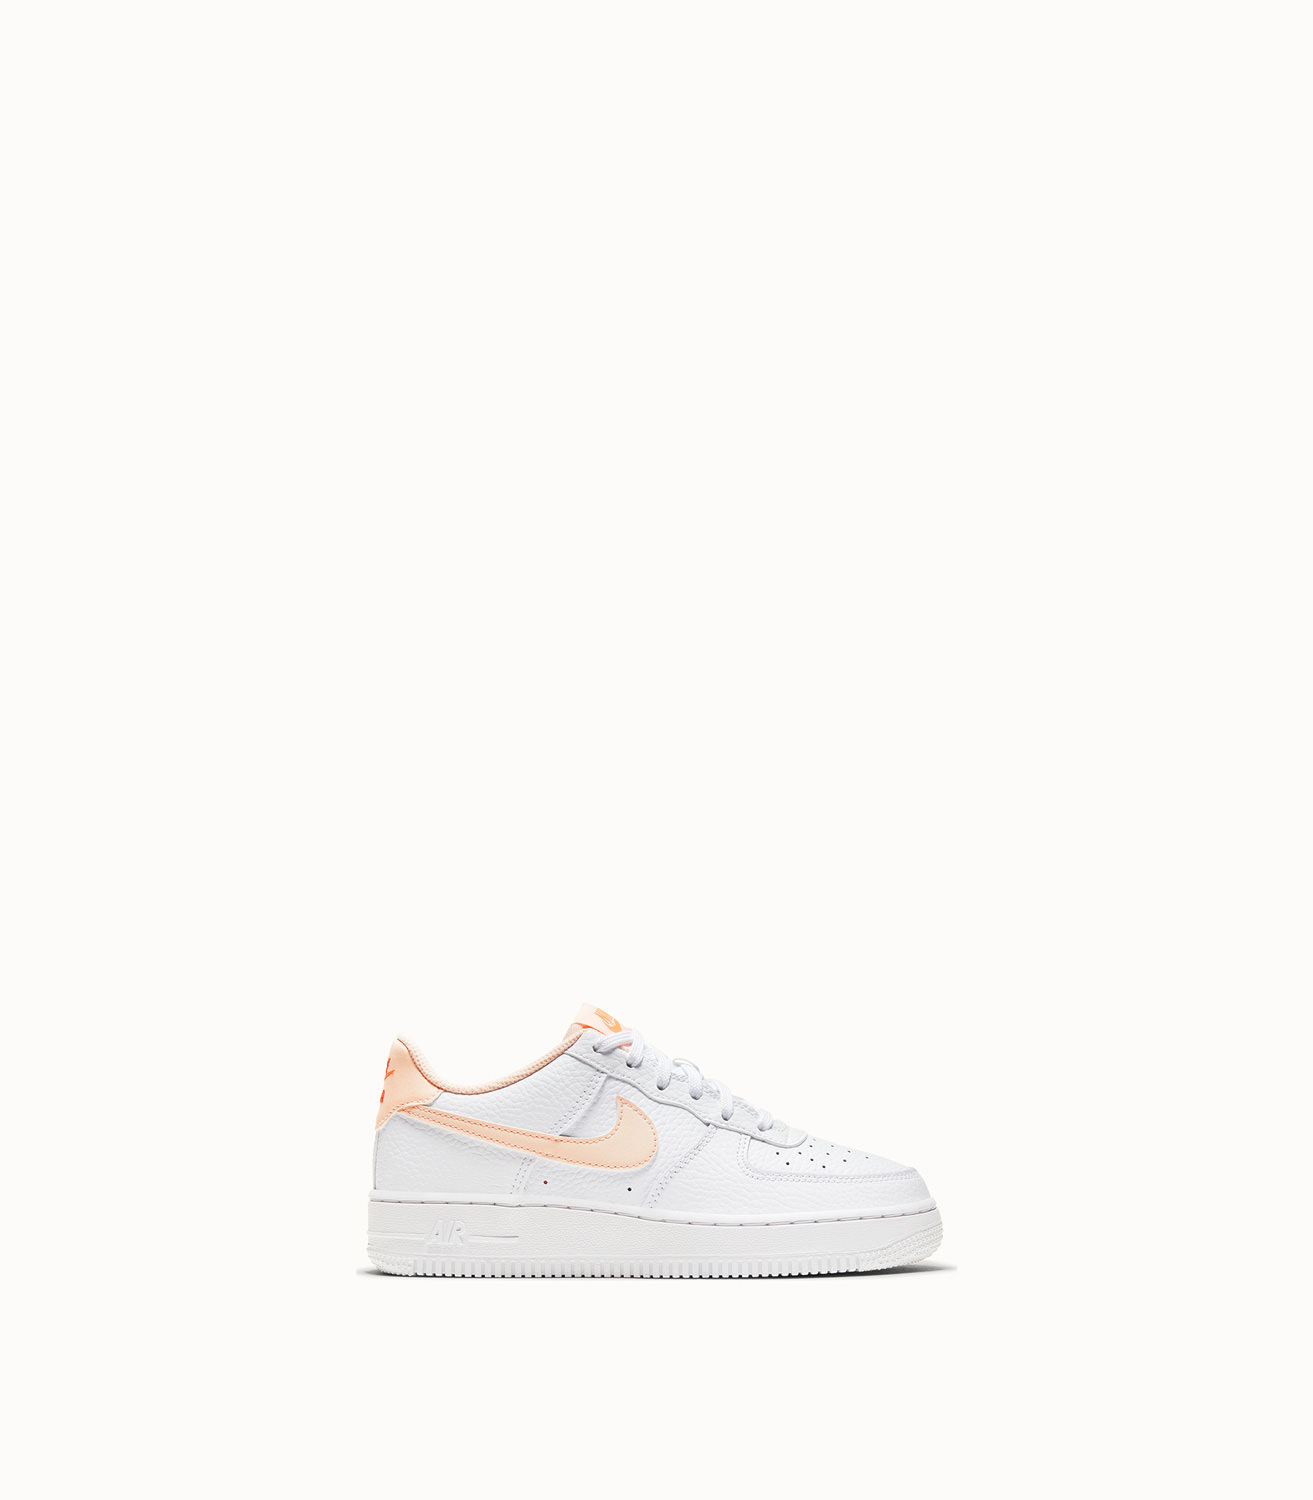 NIKE AIR FORCE 1 (GS) SNEAKERS COLOR WHITE | Playground